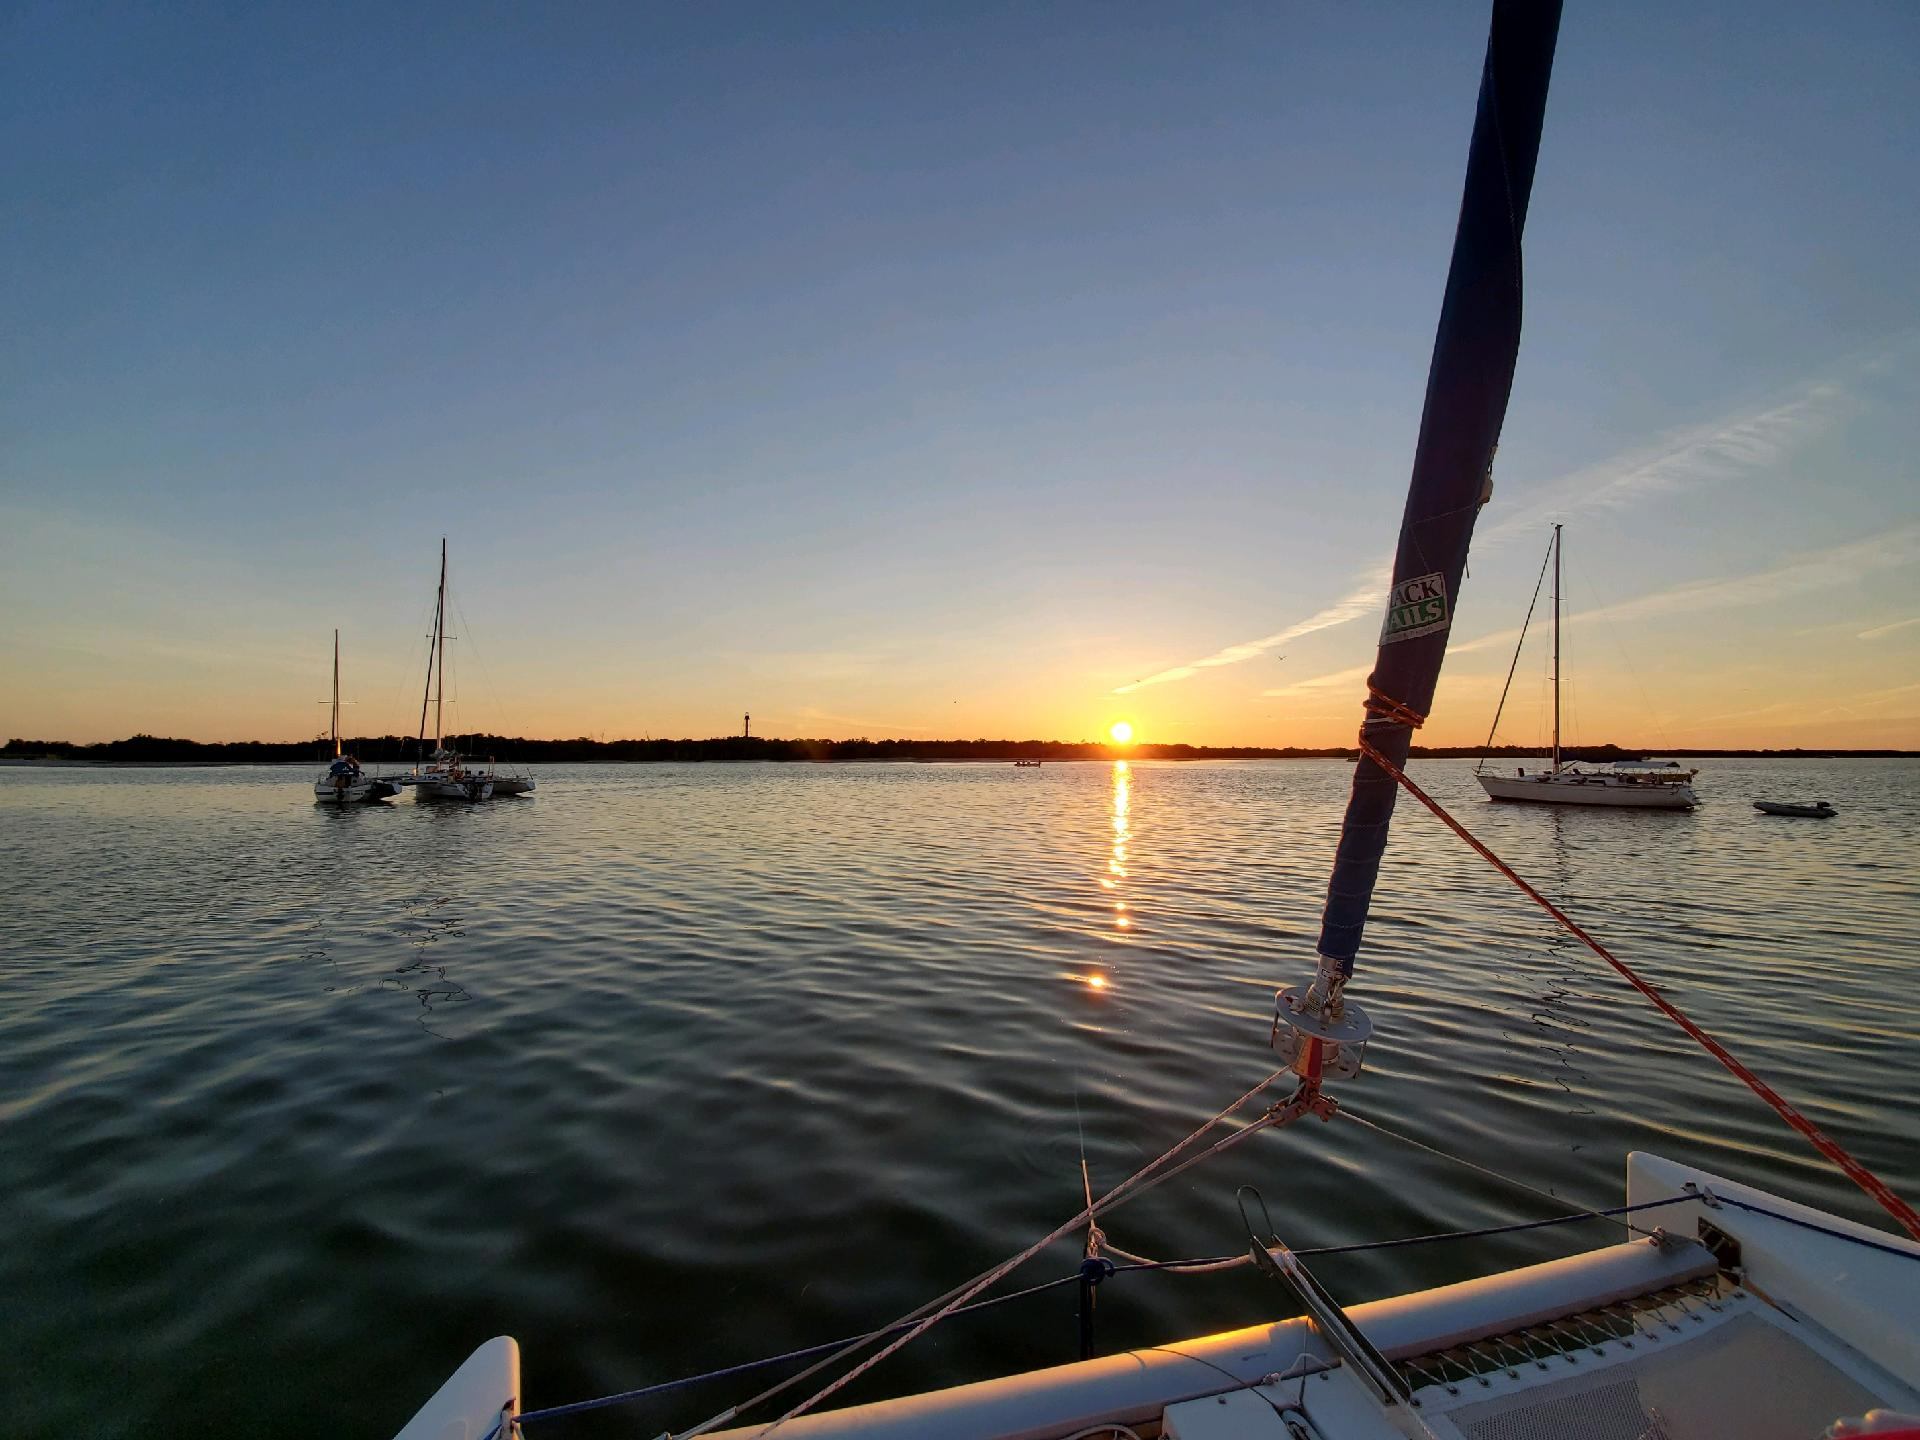 Sunset on Sailstice